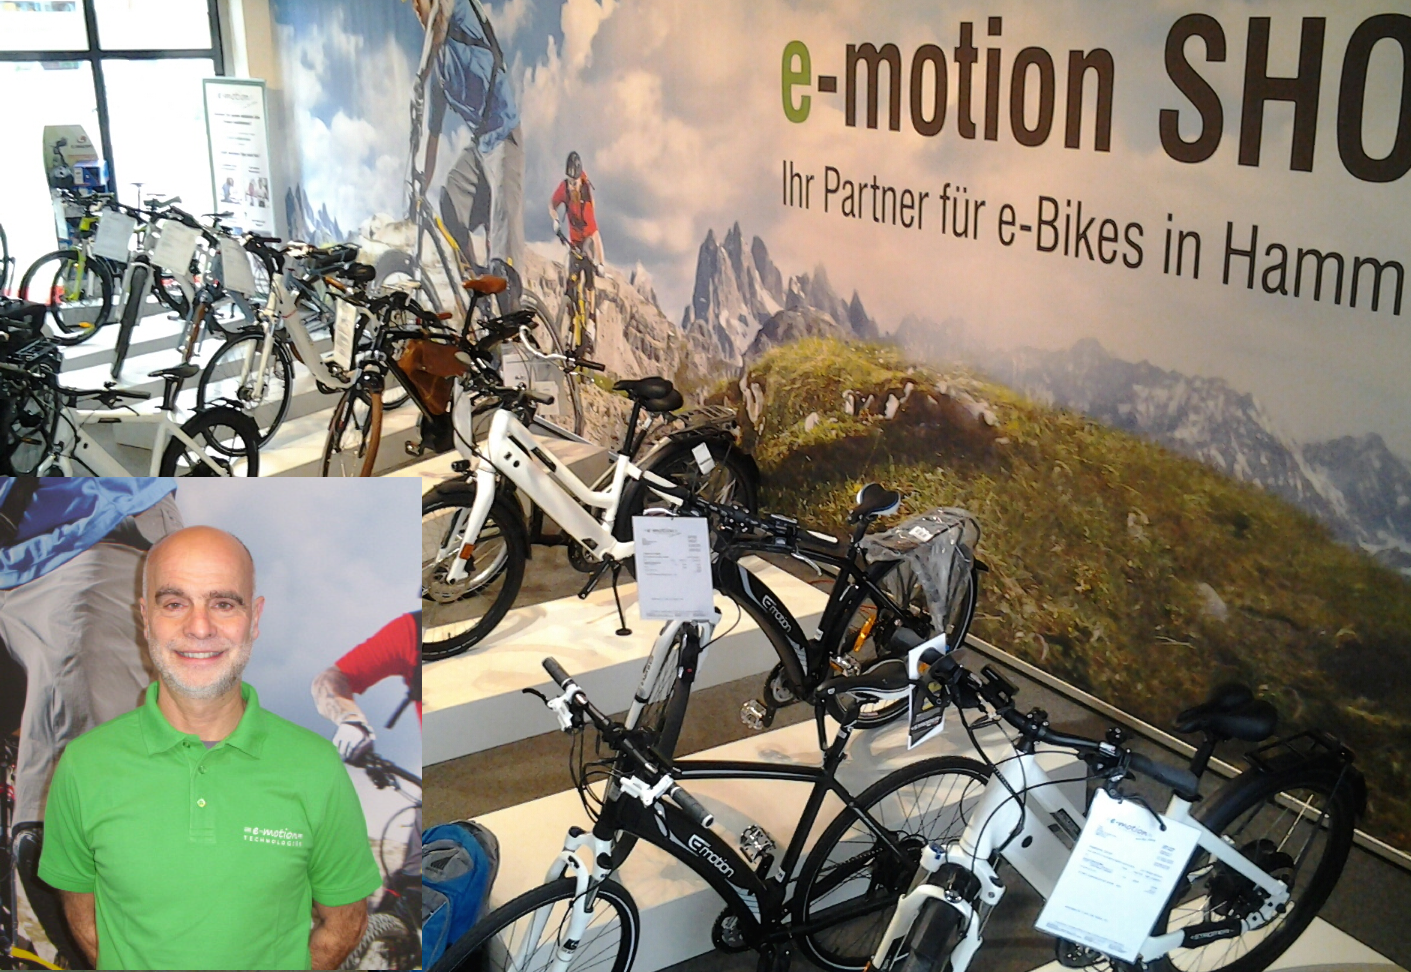 e-motion e-Bike Experten in Berlin